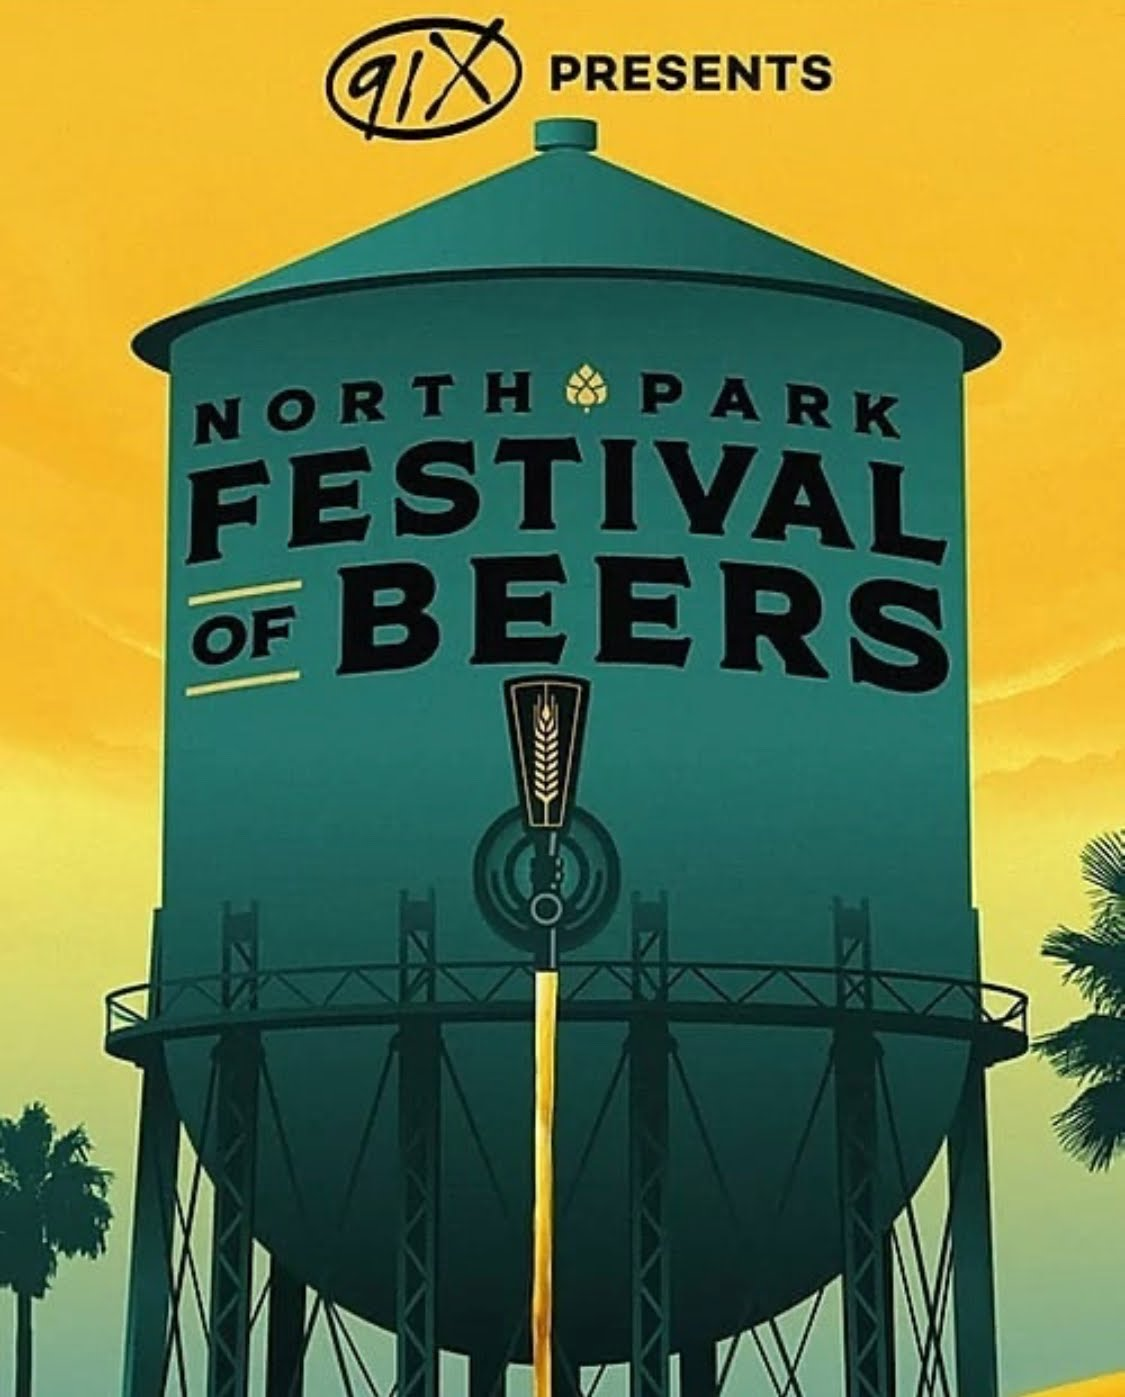 Promo code SDVILLE saves $5 per ticket to the North Park Festival of Beers - April 4!